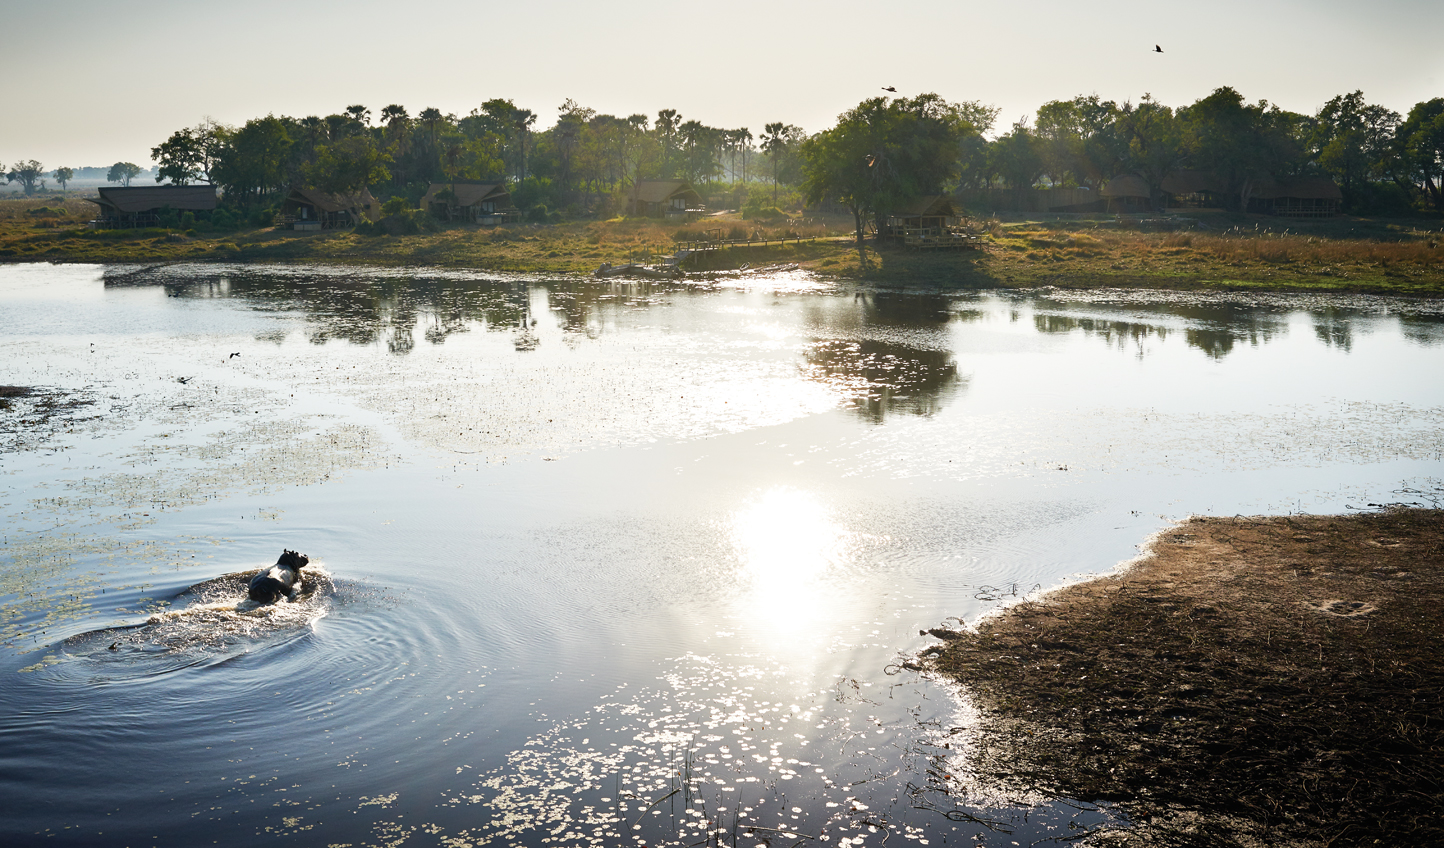 Stay in the heart of the awe-inspiring Okavango Delta